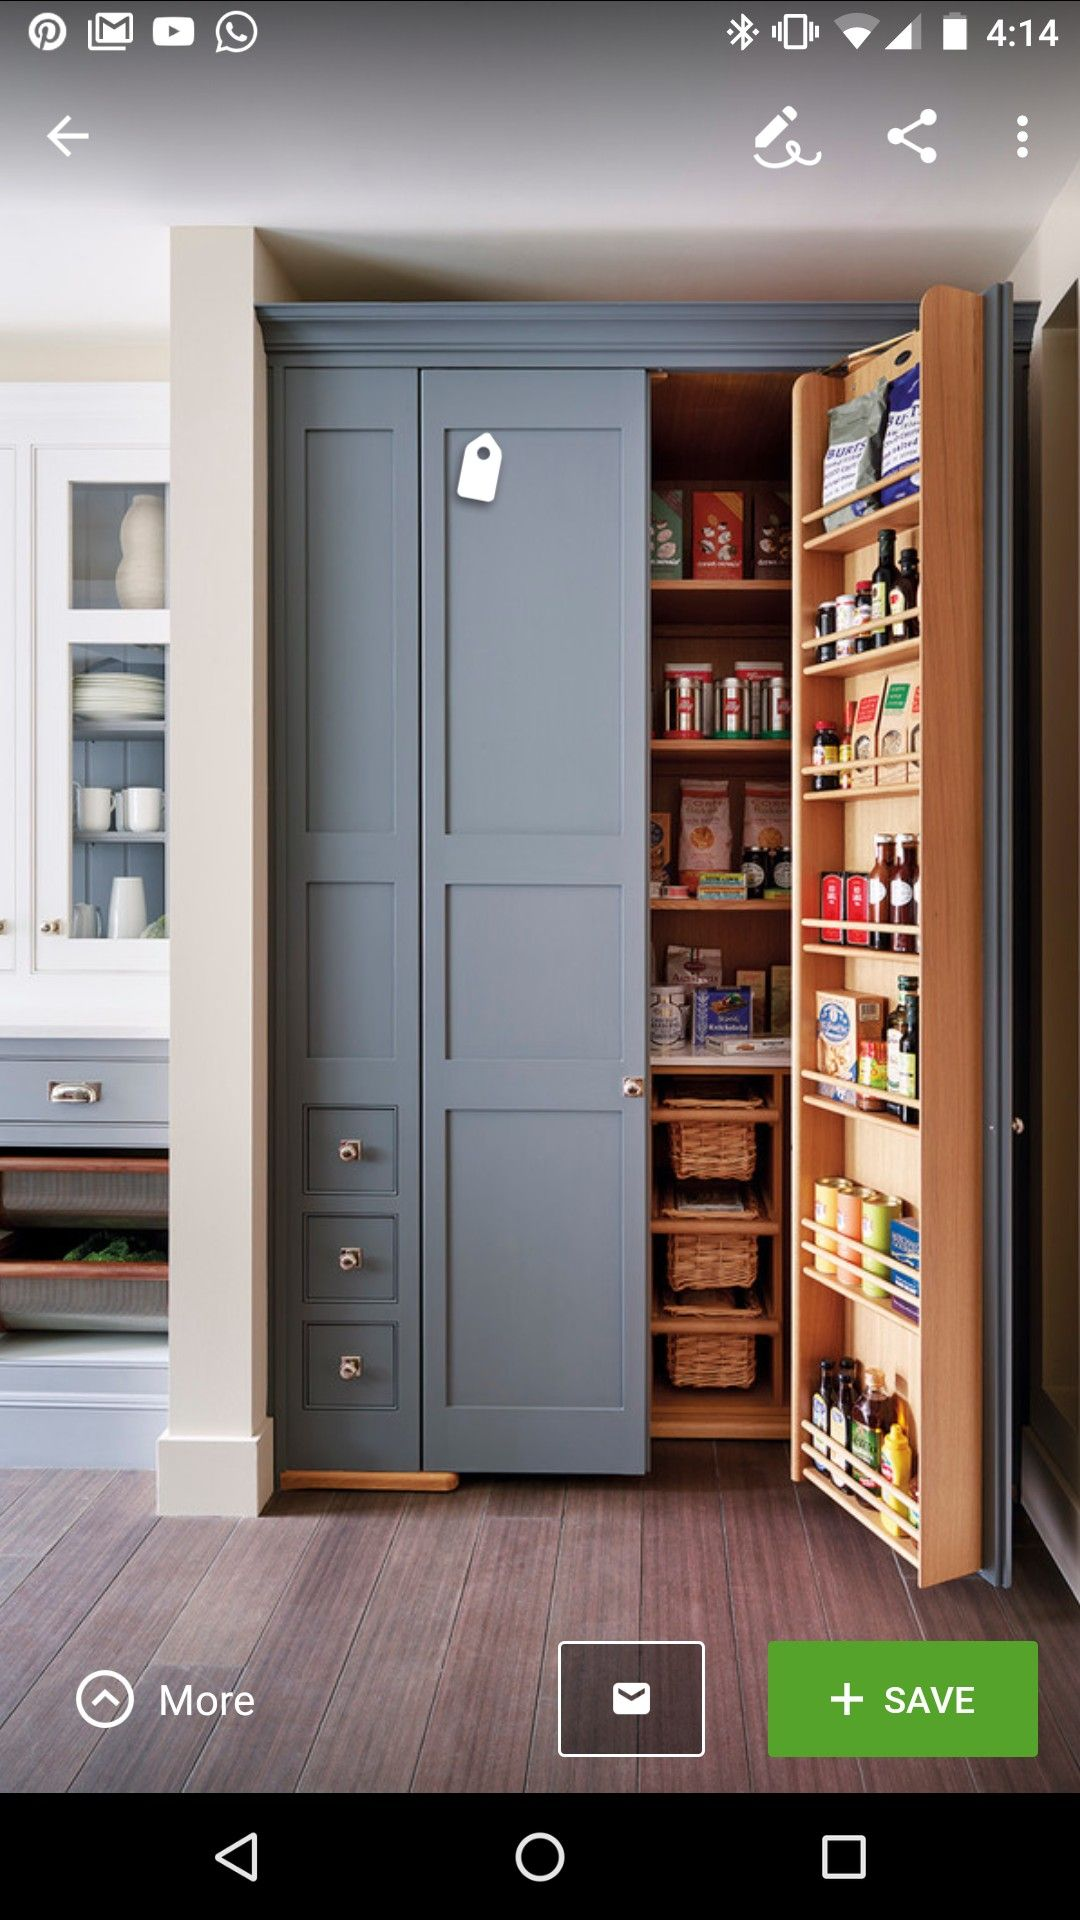 food pantry storage on door riggs inspiration board in 2018 rh pinterest com